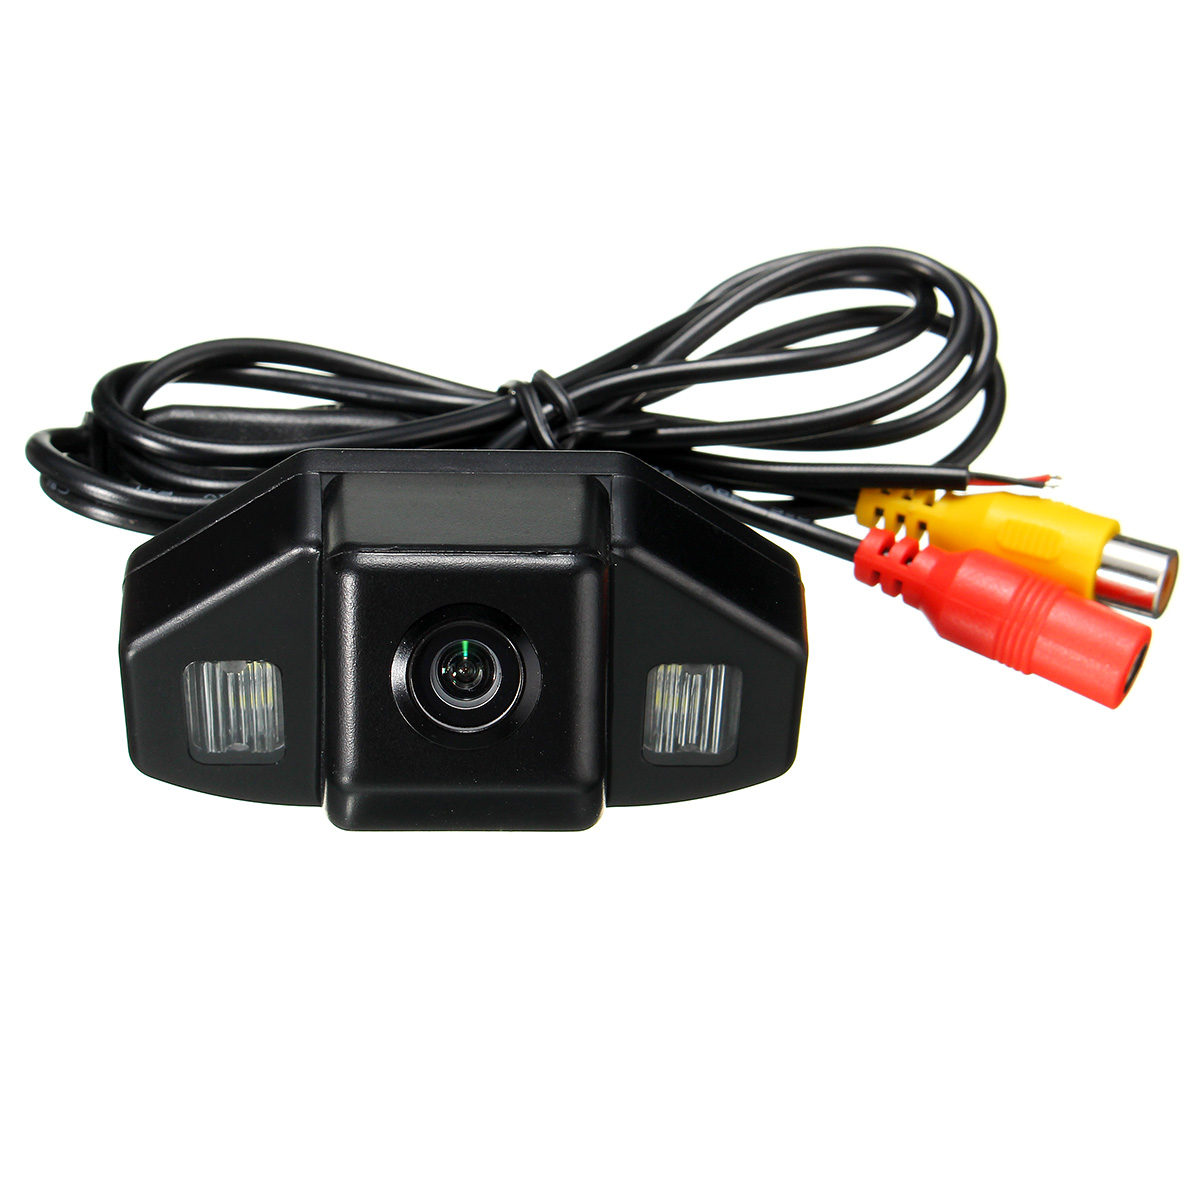 170 Degree CCD Car Rear View Camera Night Vision for Honda CRV Fit Jazz 0dyssey